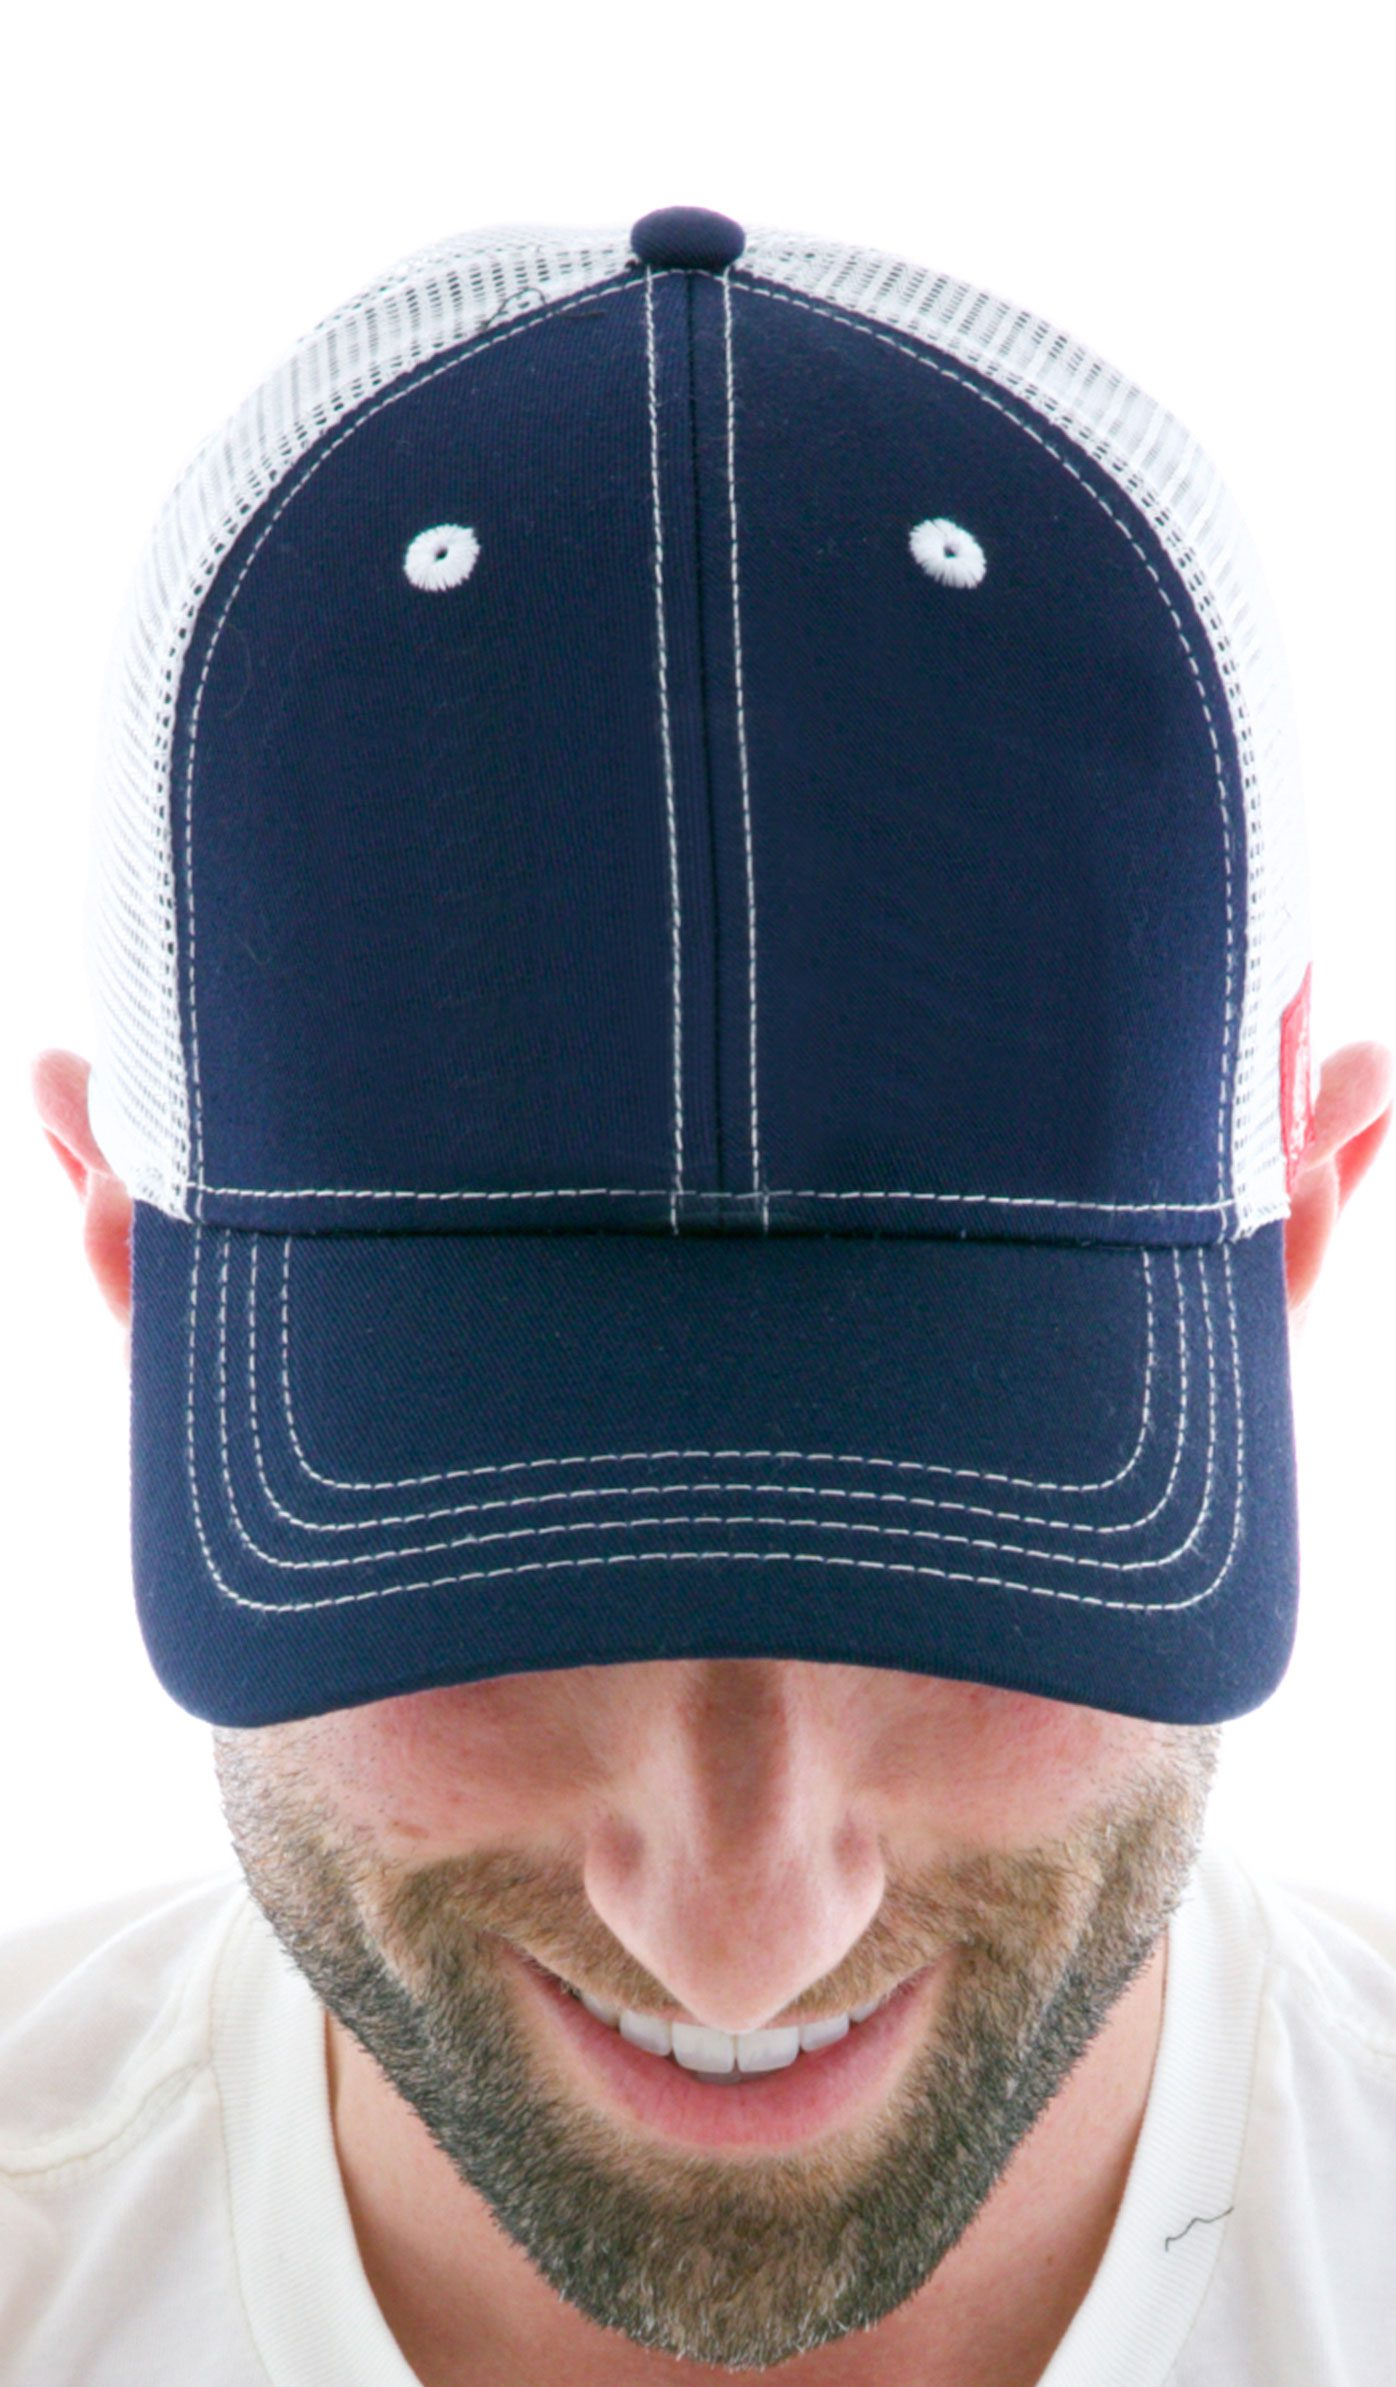 Custom Contrast Vintage Trucker Hats for Men and Women